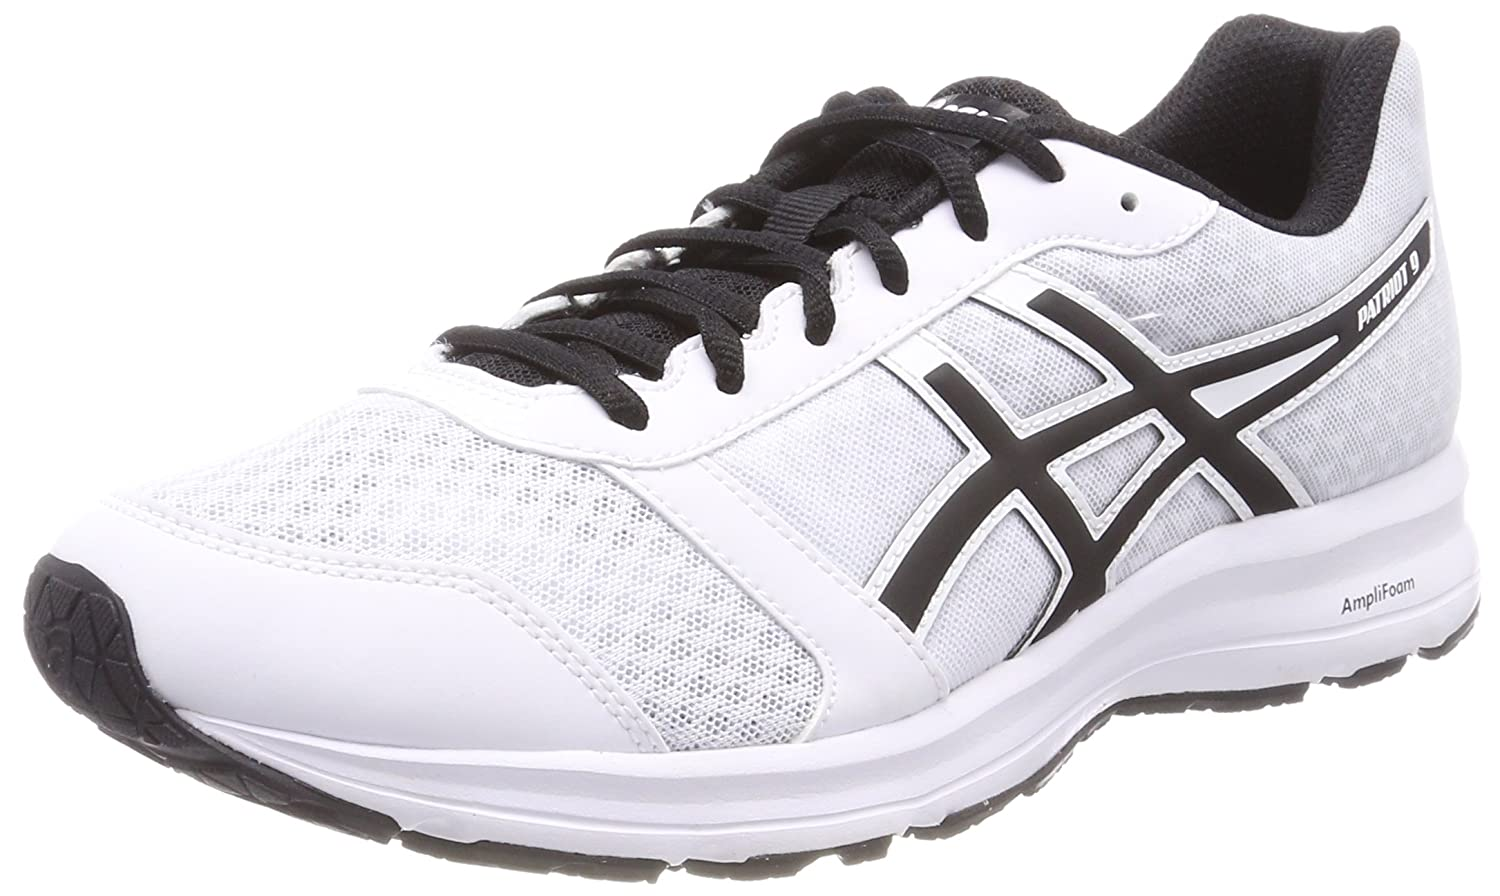 Asics Patriot 9, Zapatillas de Running para Hombre 42.5 EU|Blanco (White/Black/White 0190)